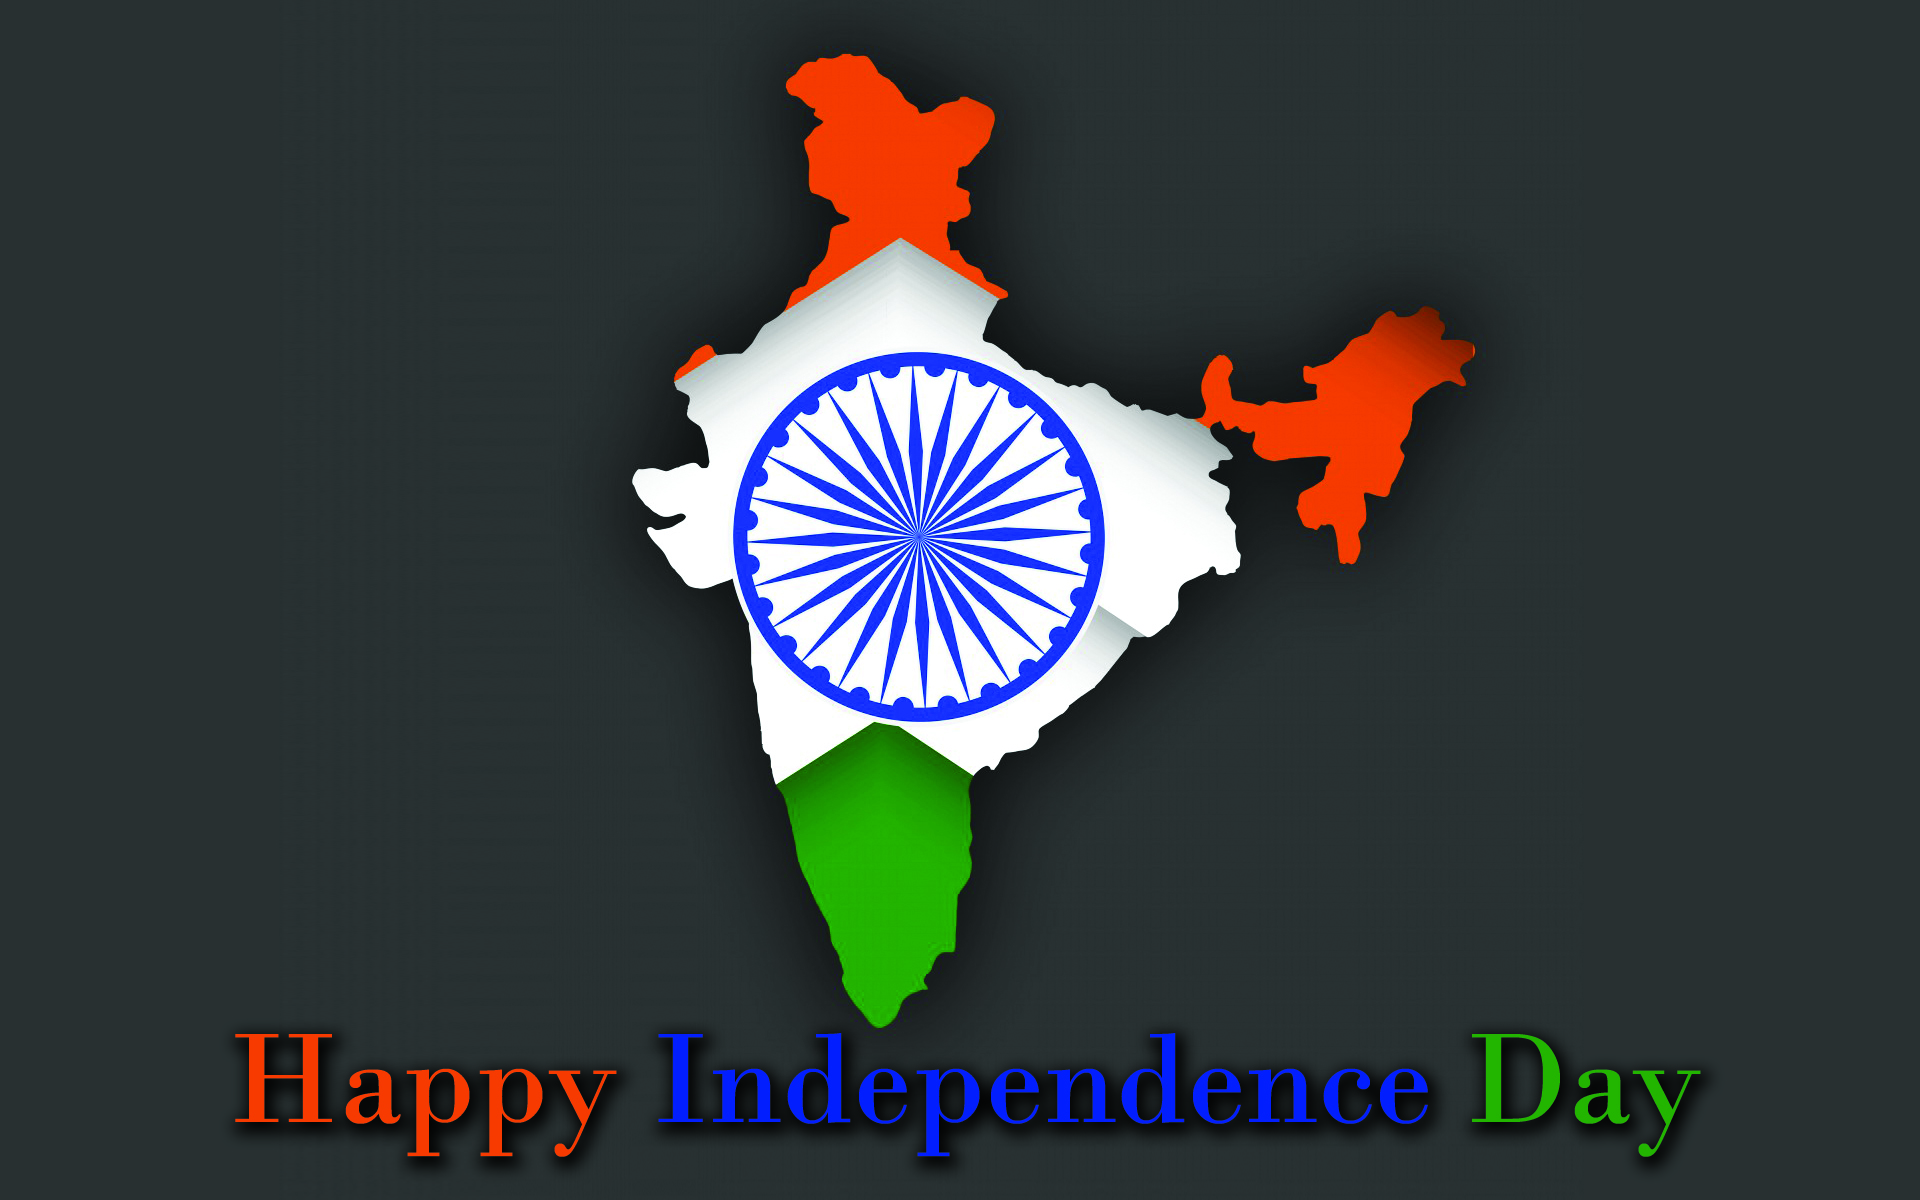 Free Wallpaper Downloads Free Indian Independence Day Animated Wallpaper Download Free